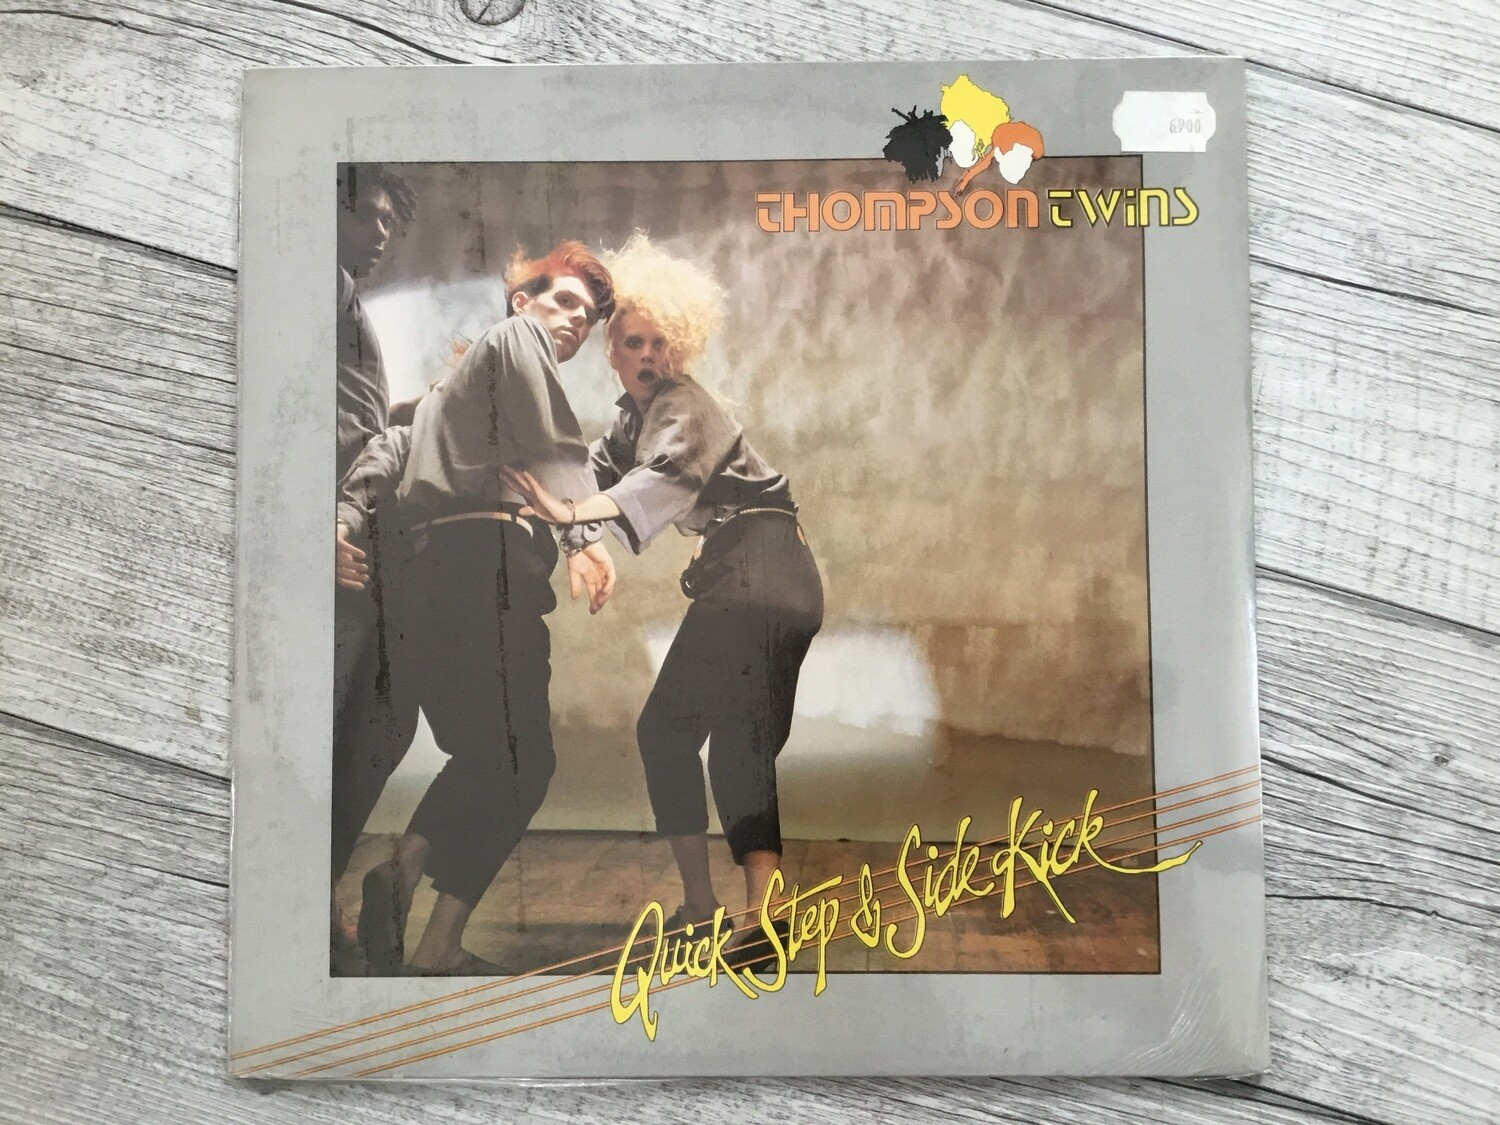 Thompson Twins - Quick step and side kick